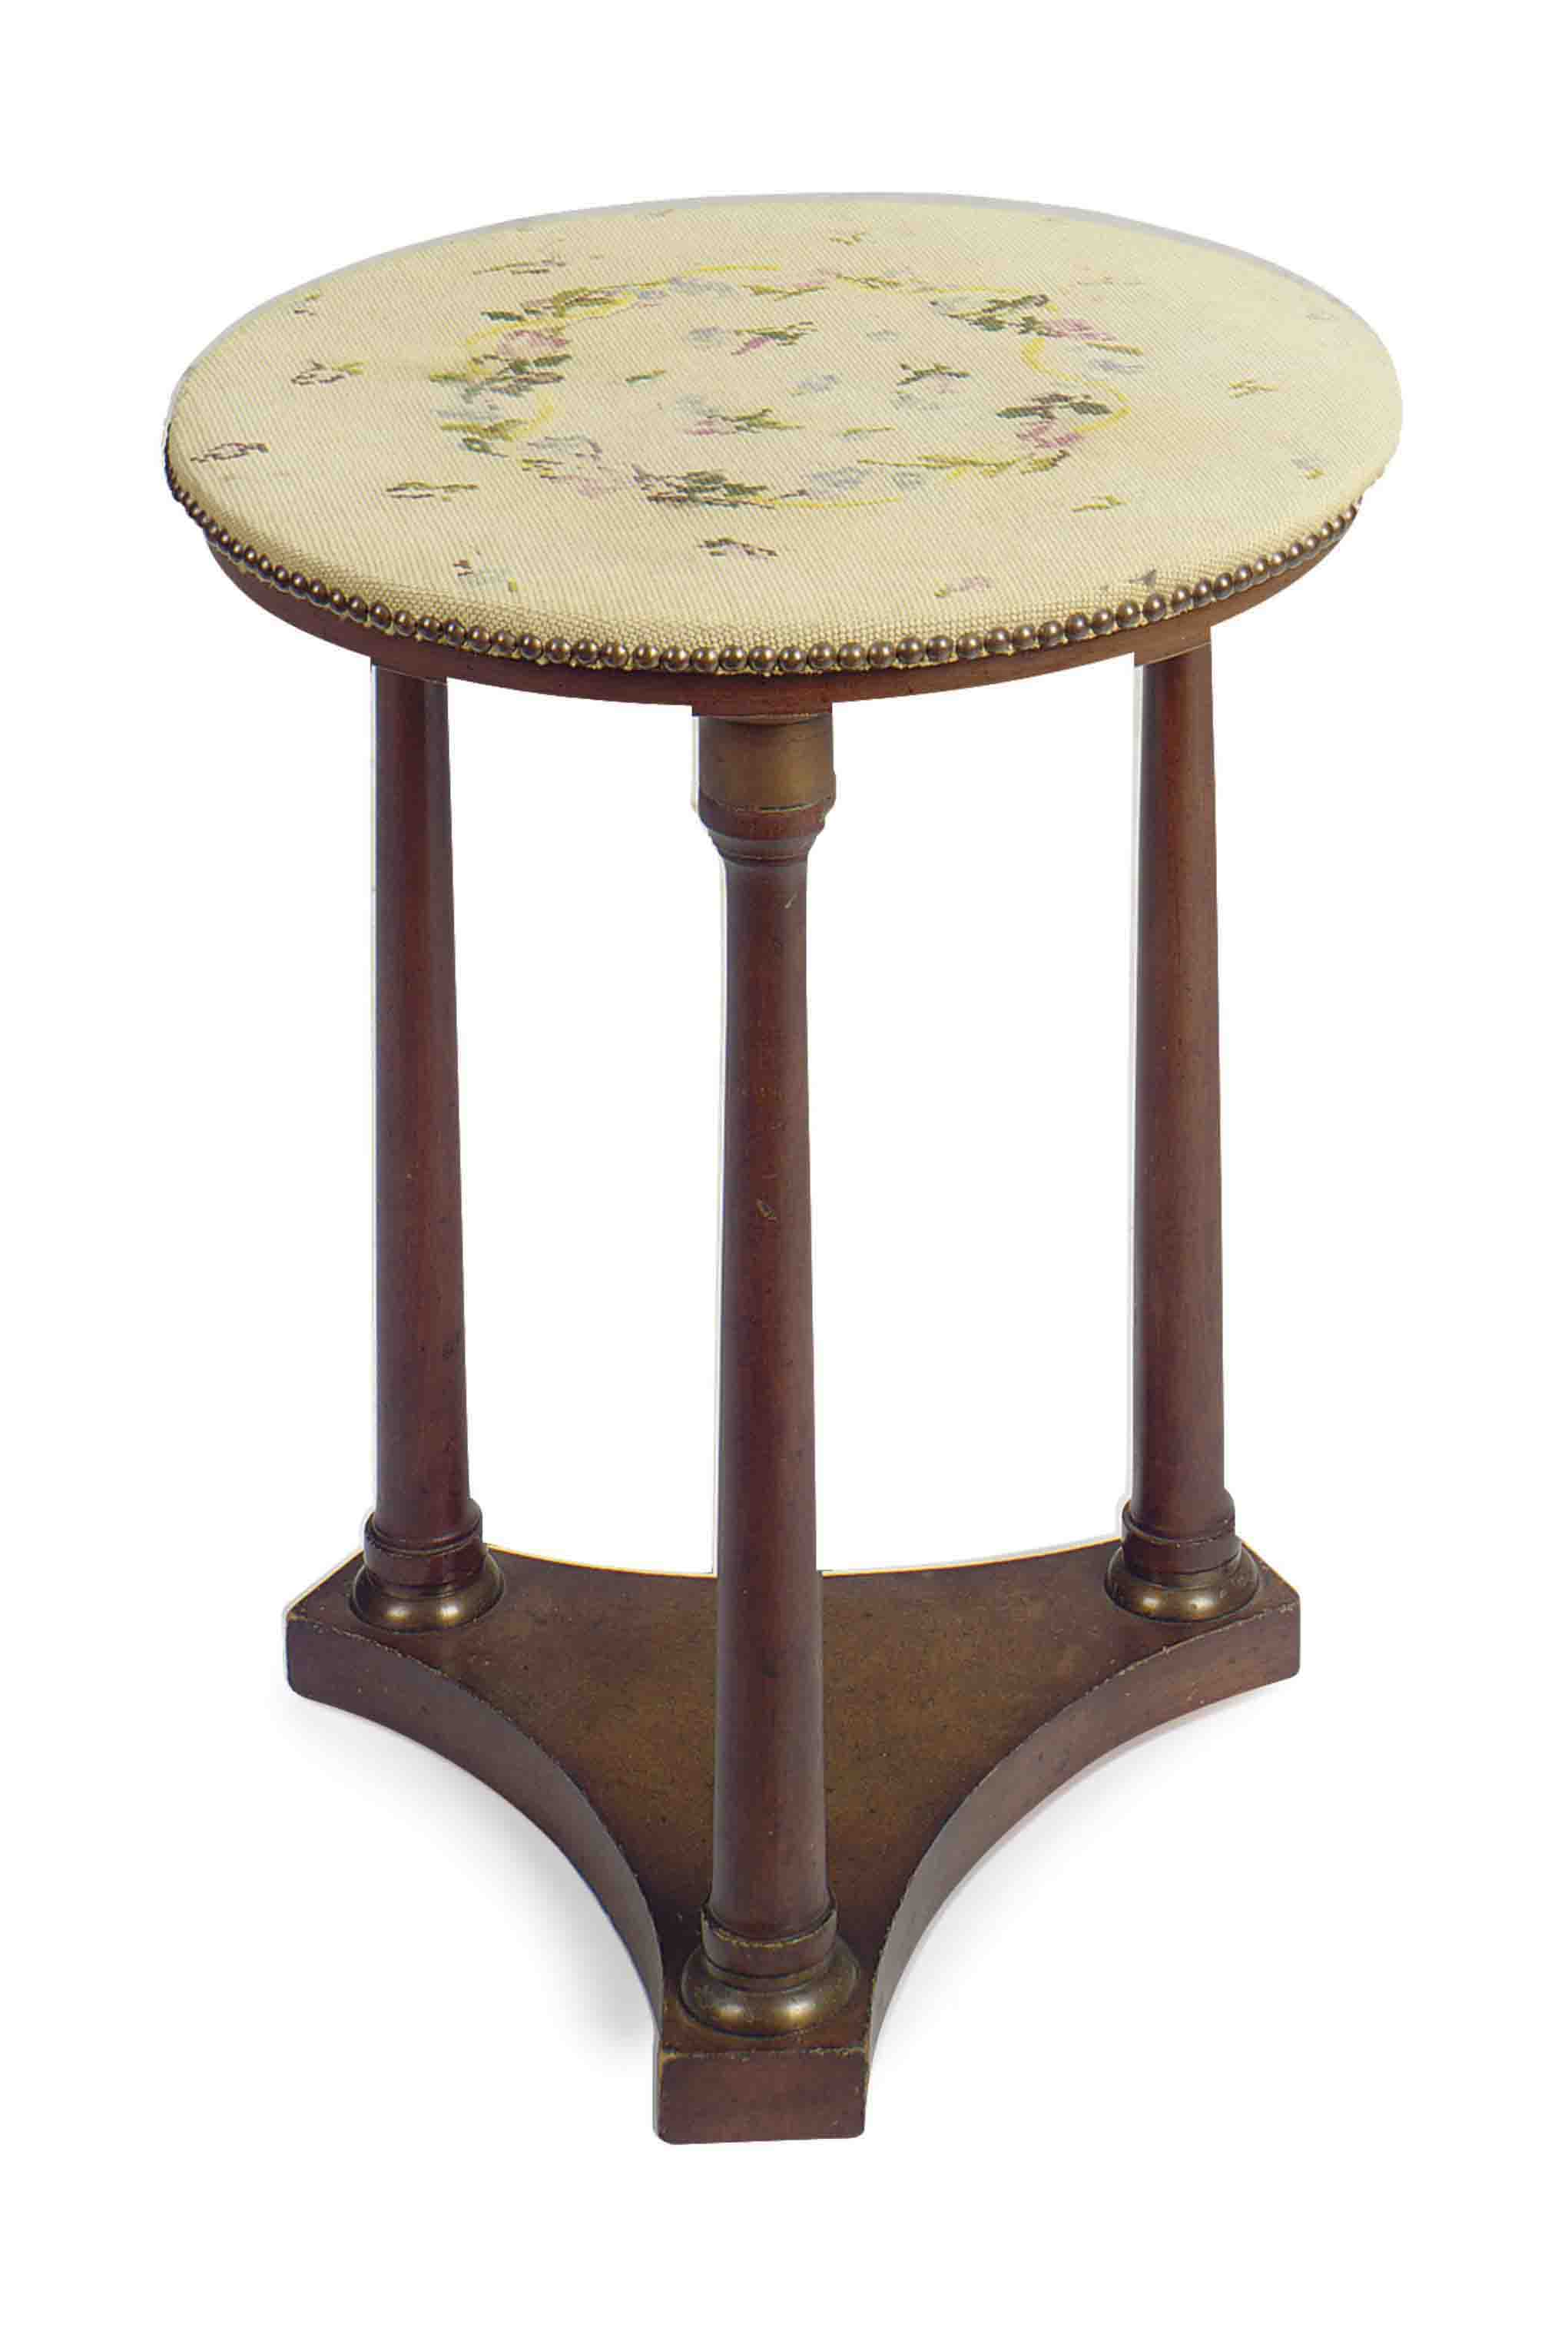 A CONTINENTAL BRASS-MOUNTED MAHOGANY AND NEEDLEWORK-COVERED SIDE TABLE,